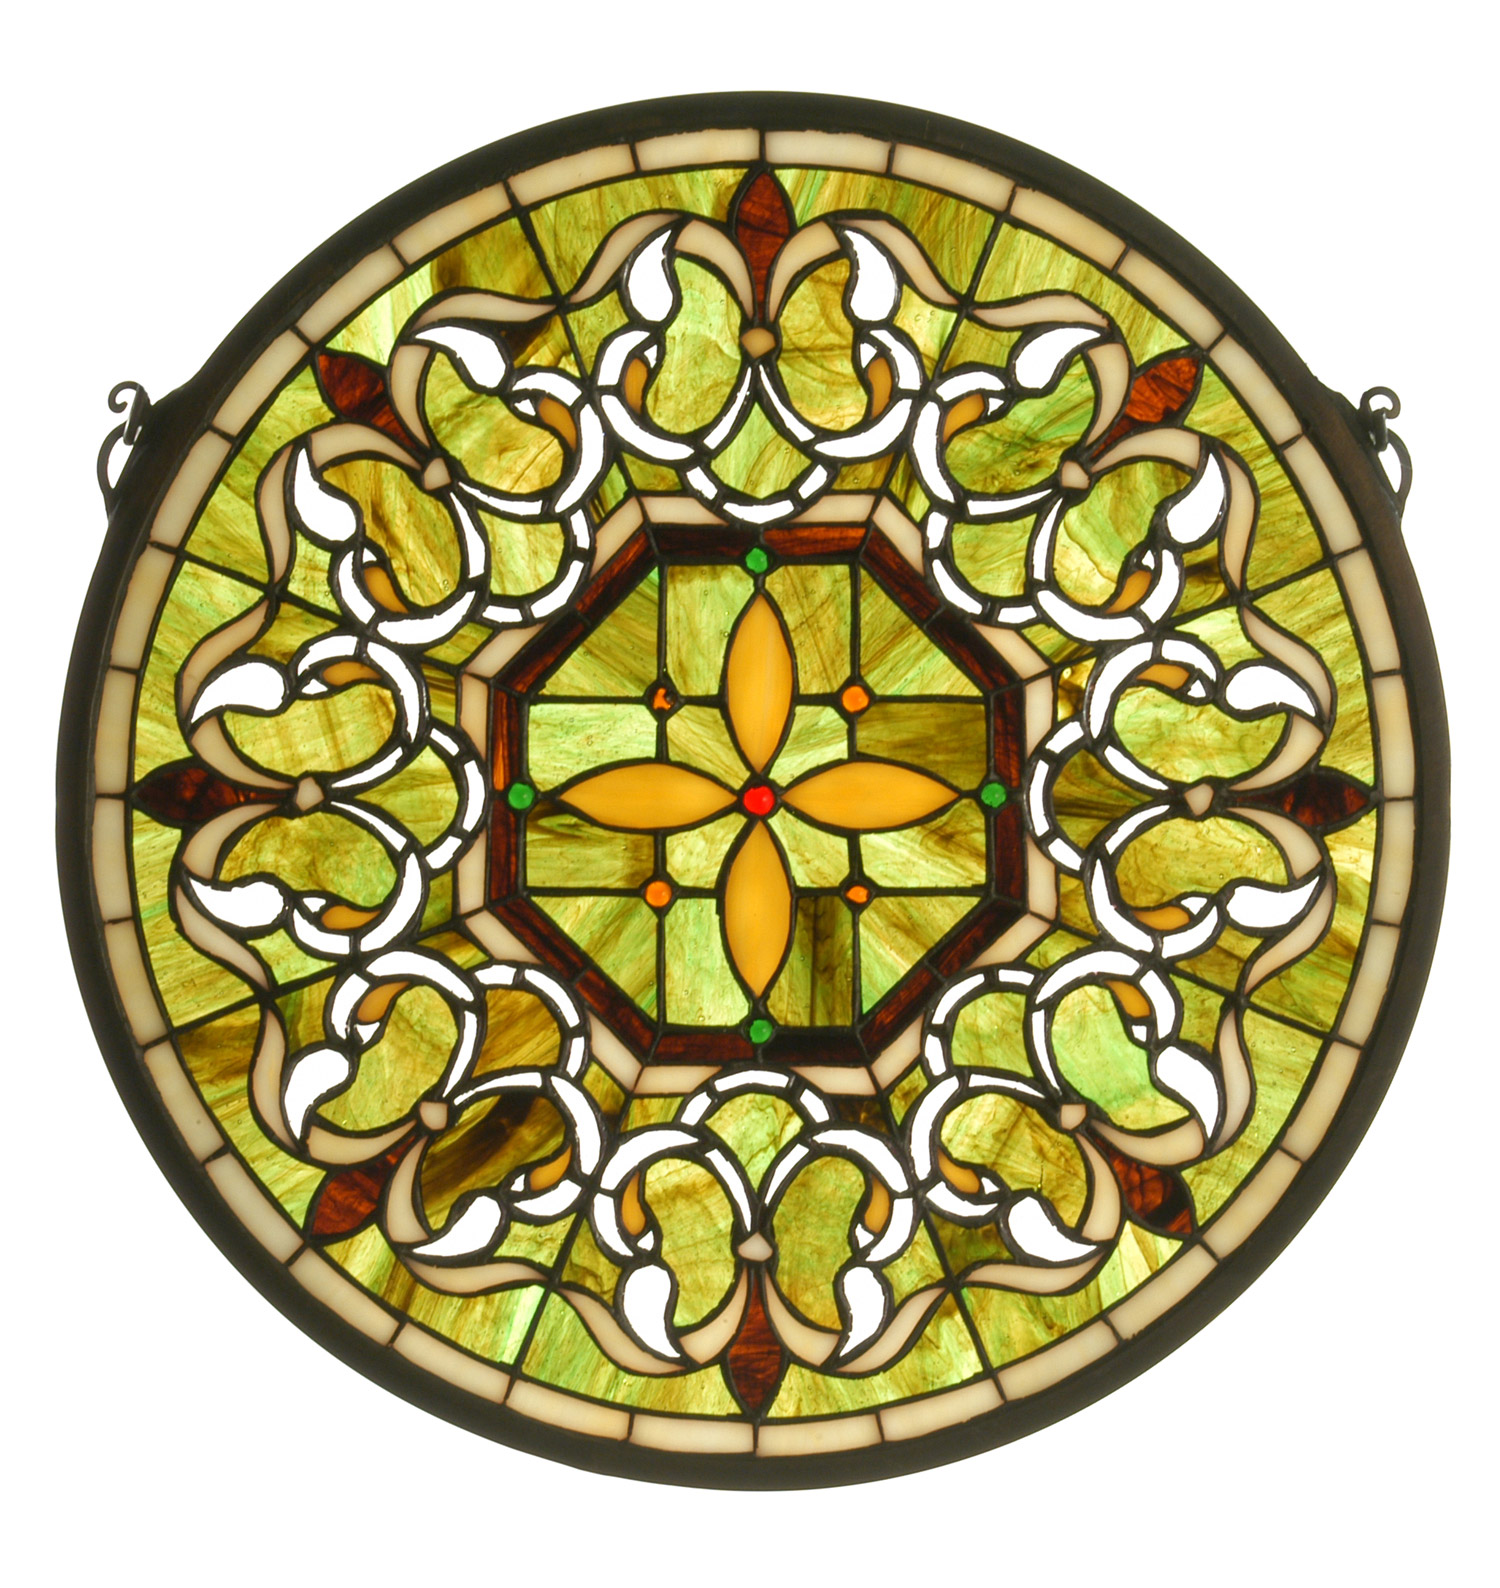 meyda glass medallion hex window tiffany stained